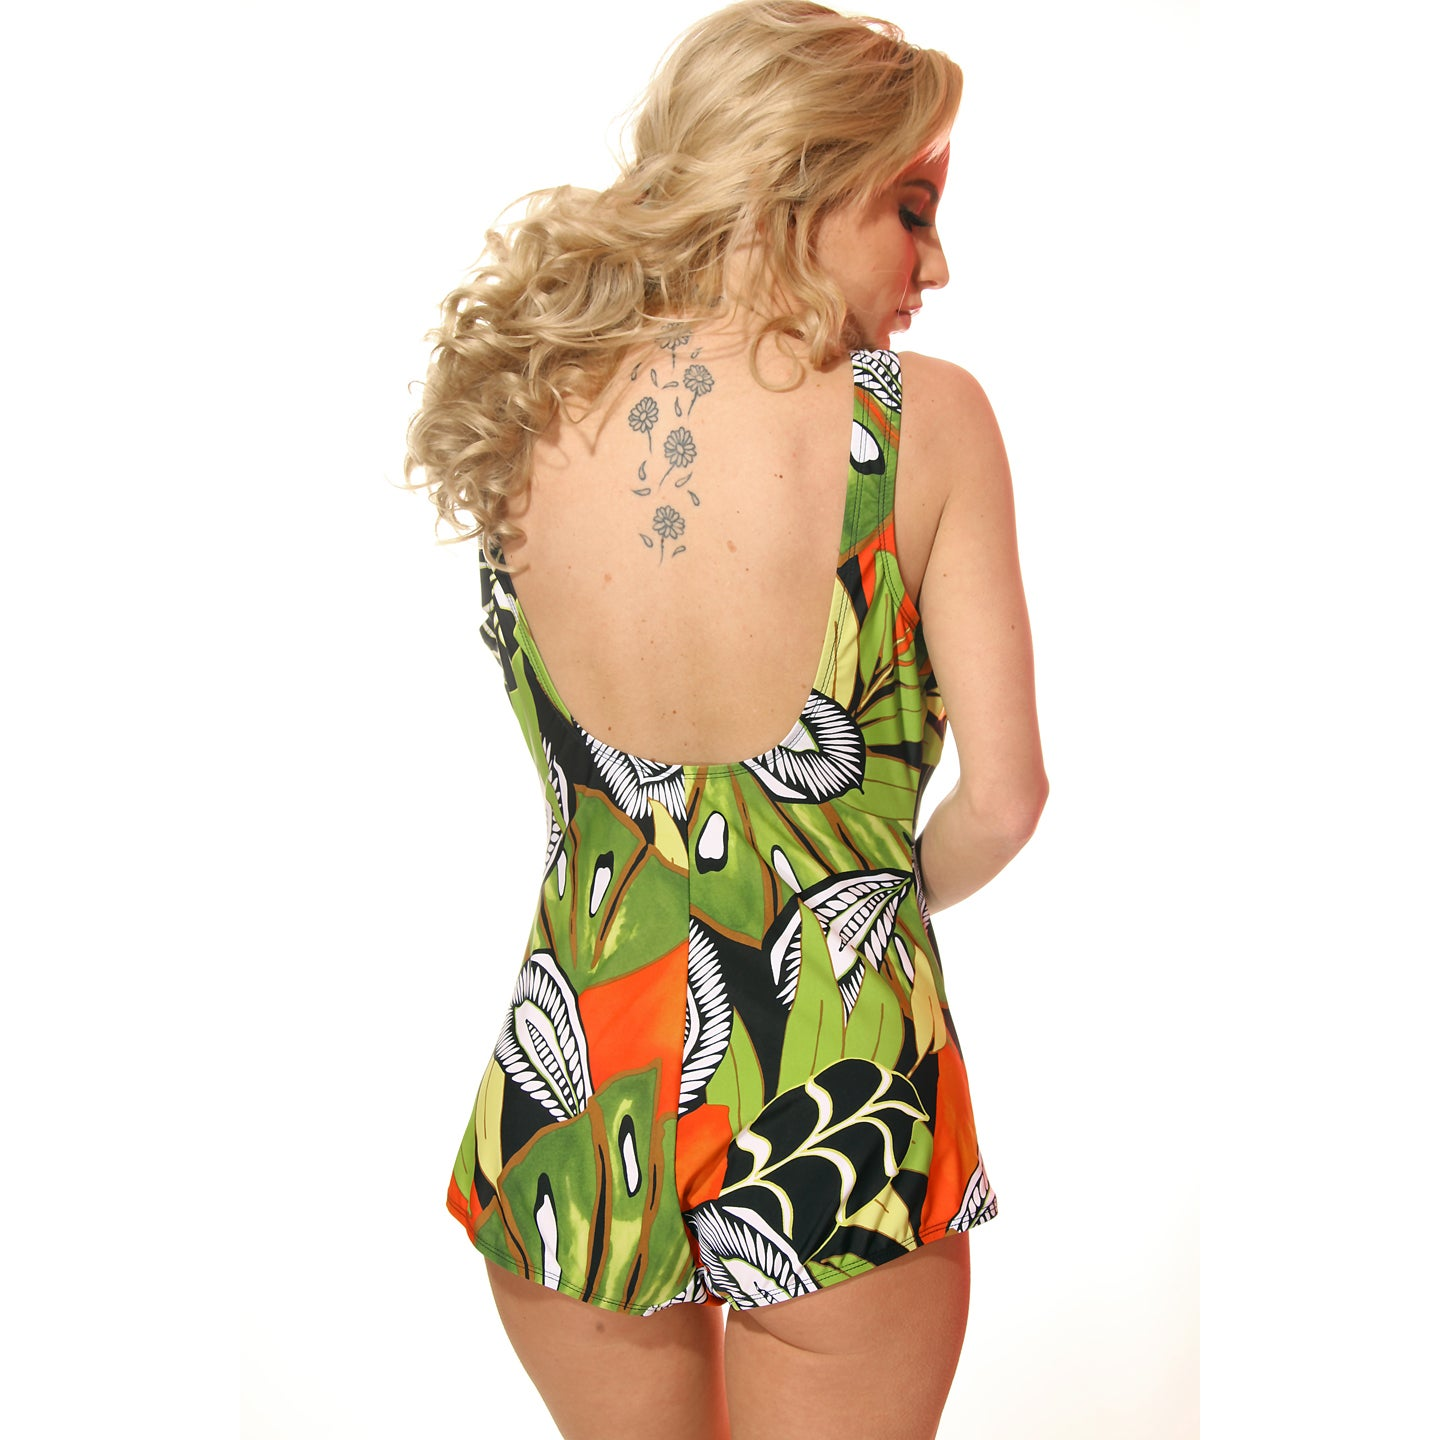 0e86ebcc58a Shop Missy Plus Size Green and Orange Jungle Boy-cut One-piece Bathing Suit  - Free Shipping Today - Overstock - 10327948